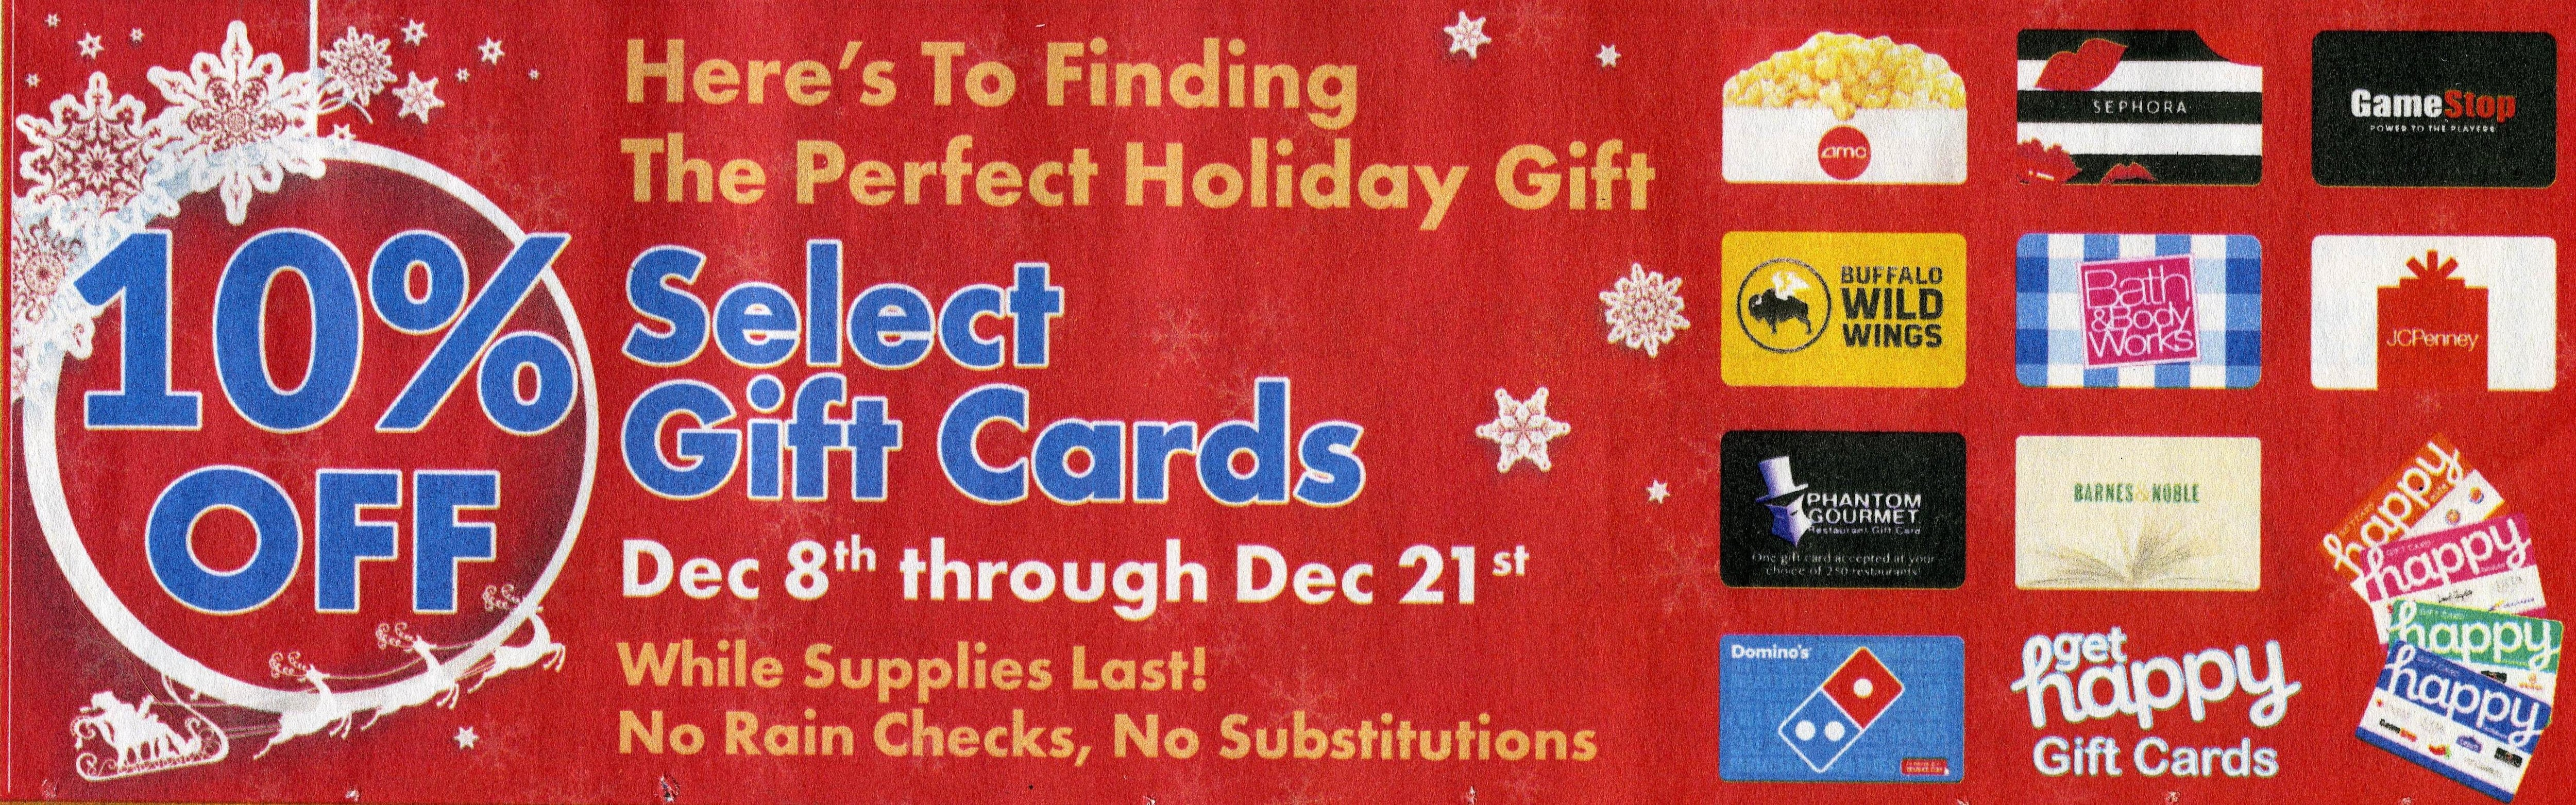 MA, NH, ME, RI: Market Basket: 10% off select gift cards 12/8 to 12/21